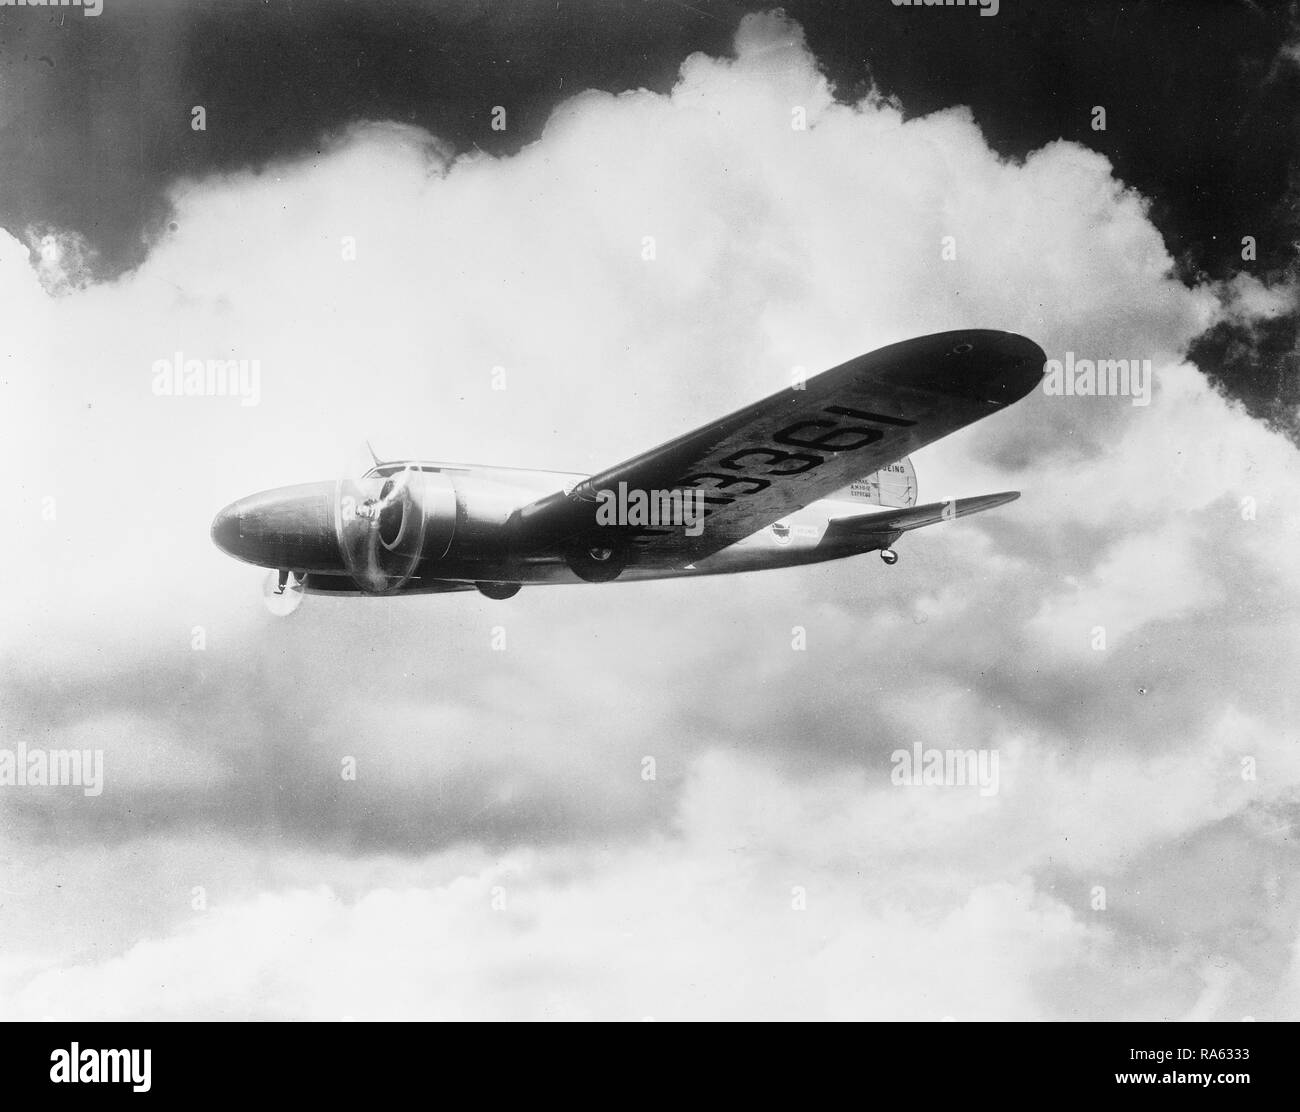 Commercial aviation ca. 1905-1945 - Stock Image